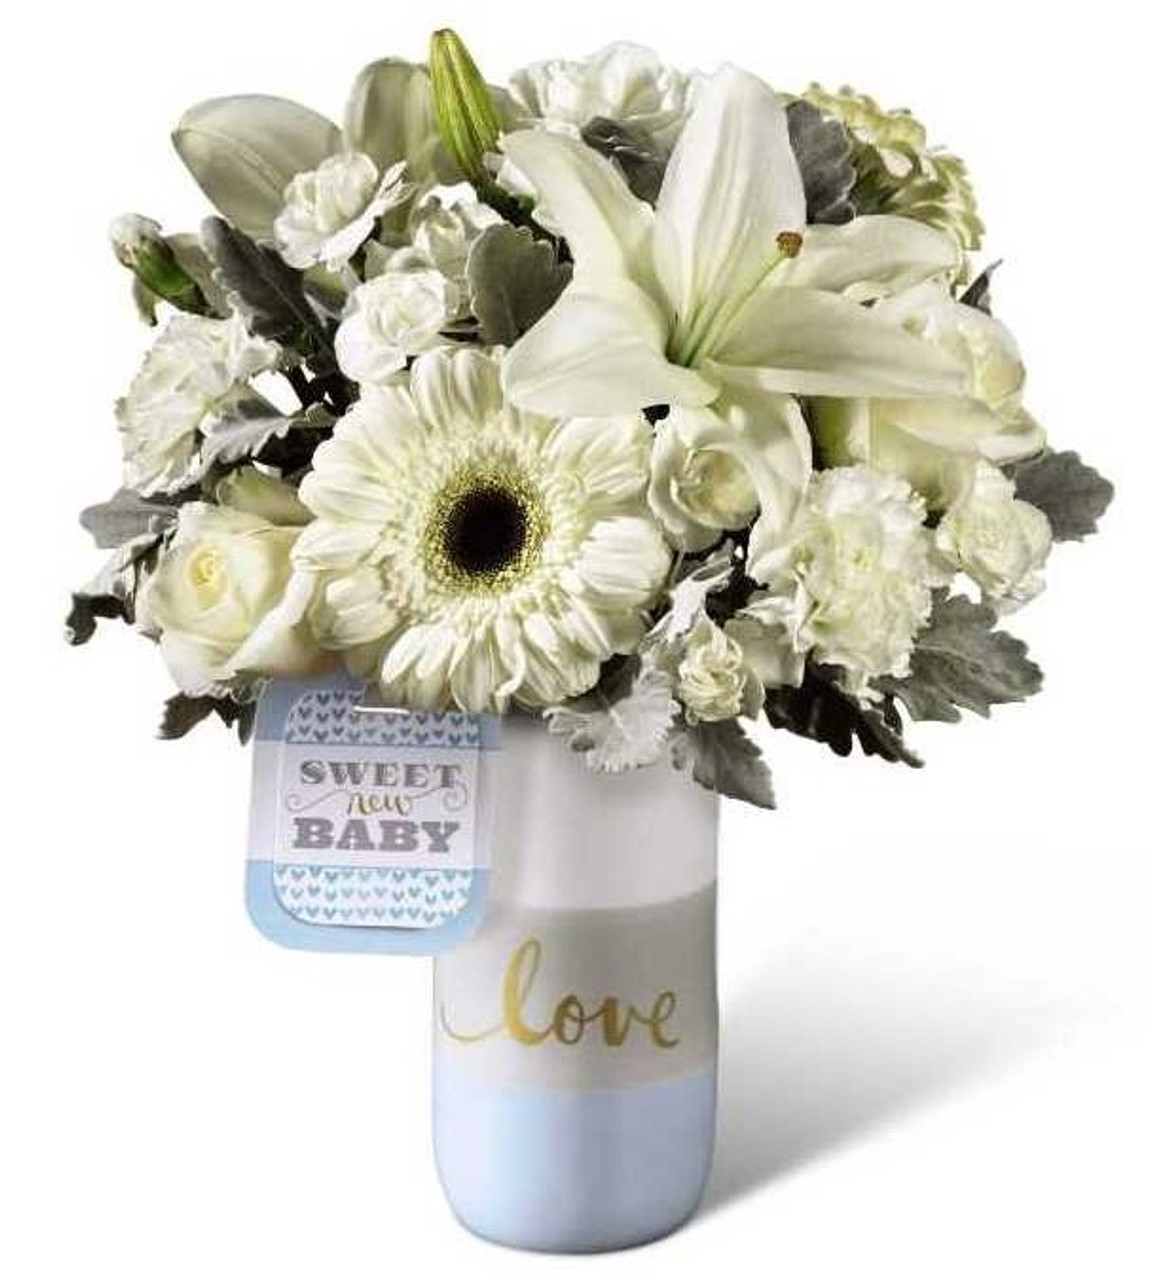 FTD Sweet Baby Boy Bouquet - Georgetown Flowers & Gifts